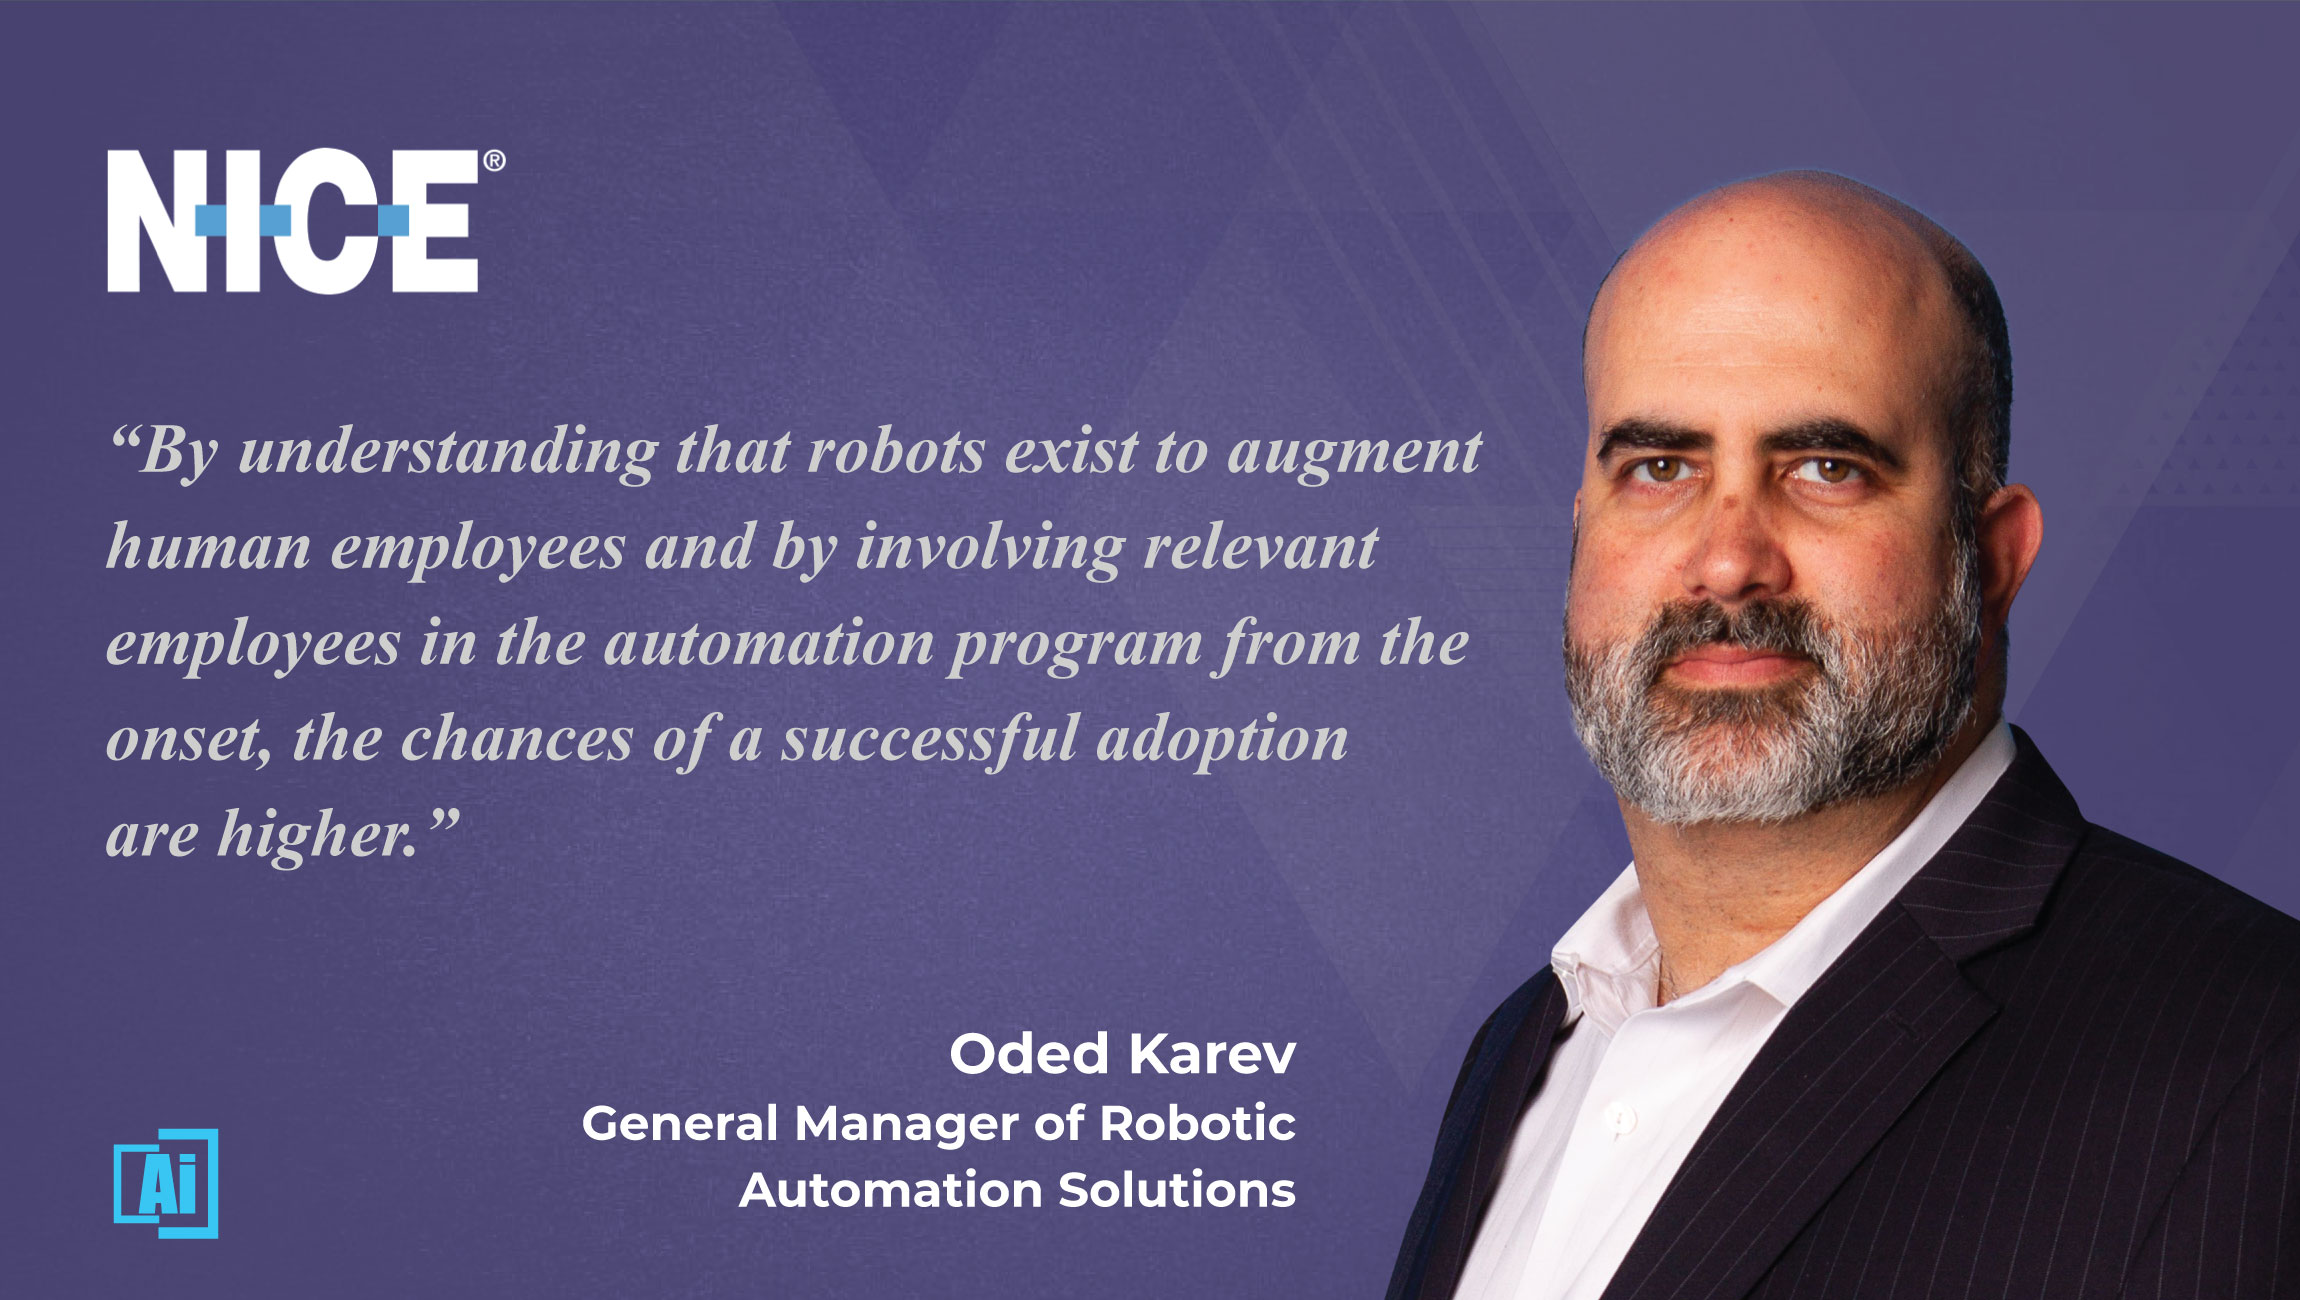 AiThority Interview with Oded Karev, General Manager of Robotics Process Automation at NICE